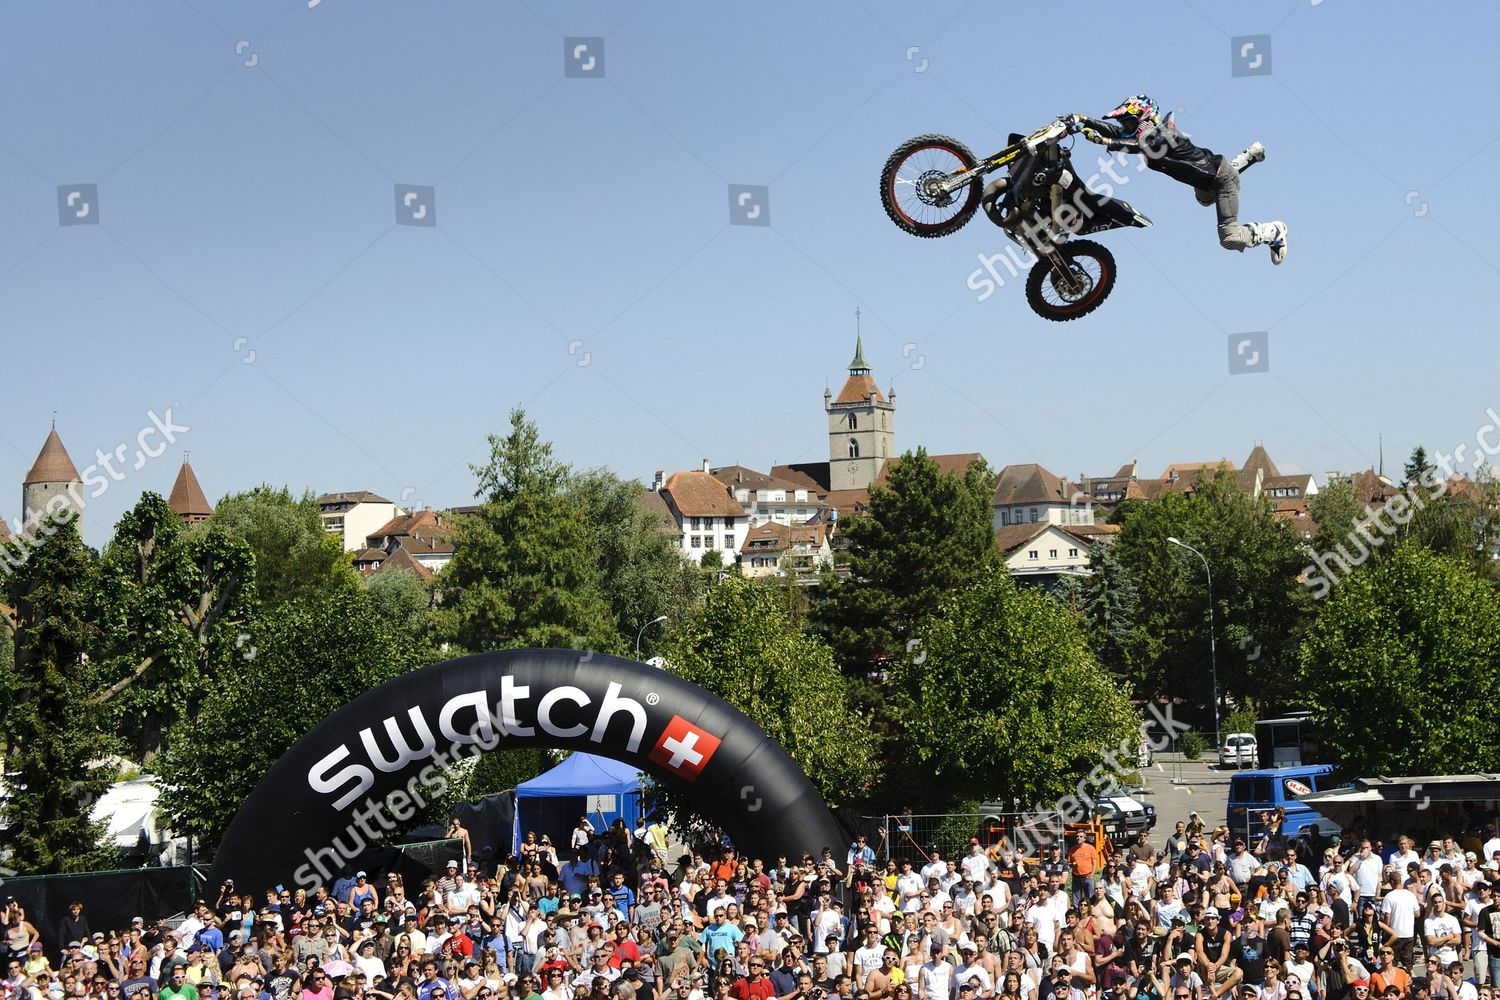 Second Placed Us Freestyle Motocross Pilot Drake Editorial Stock